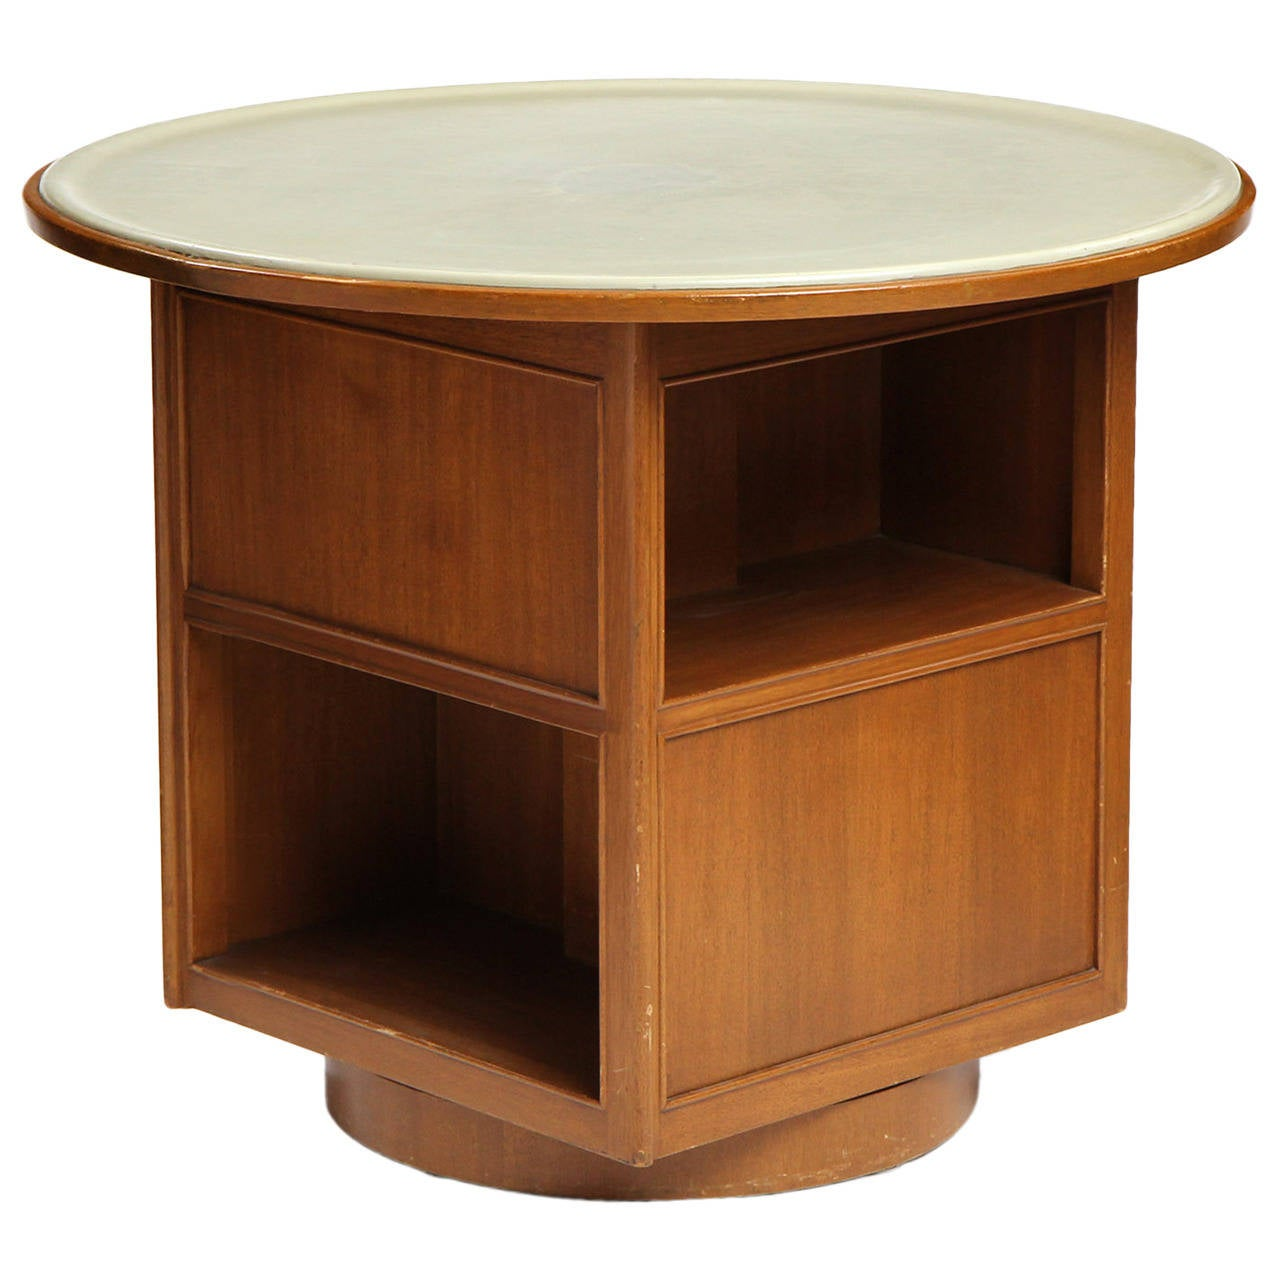 Four Sided Leather Top Table by Dunbar